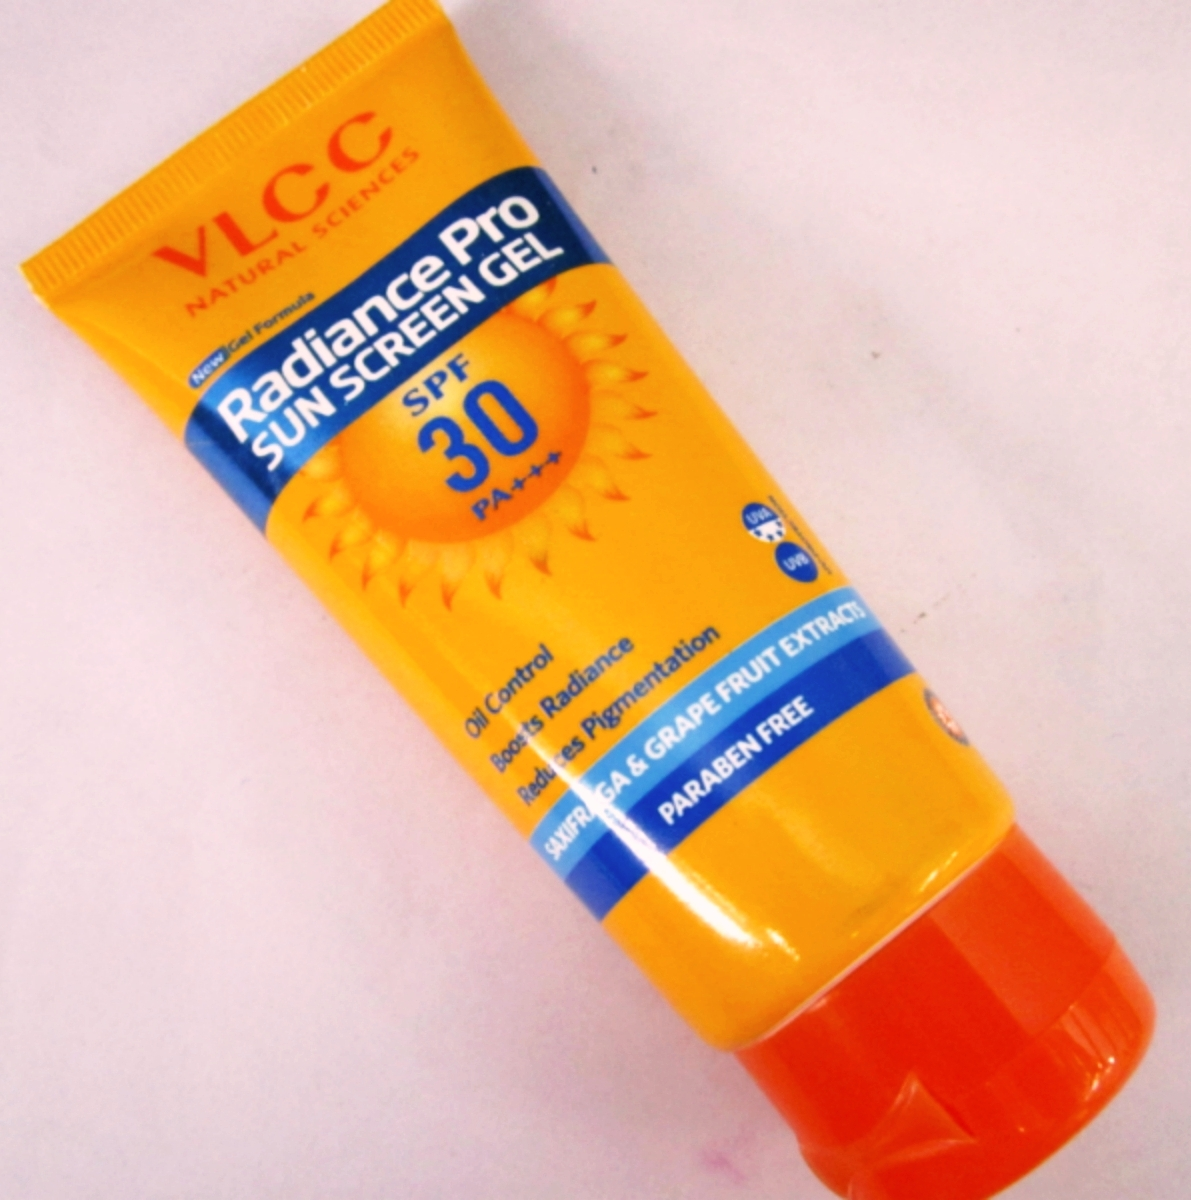 VLCC Matte Depigmentation Look Sun Screen Gel Creme pic 1-Ideal for all skin types-By riya_neema